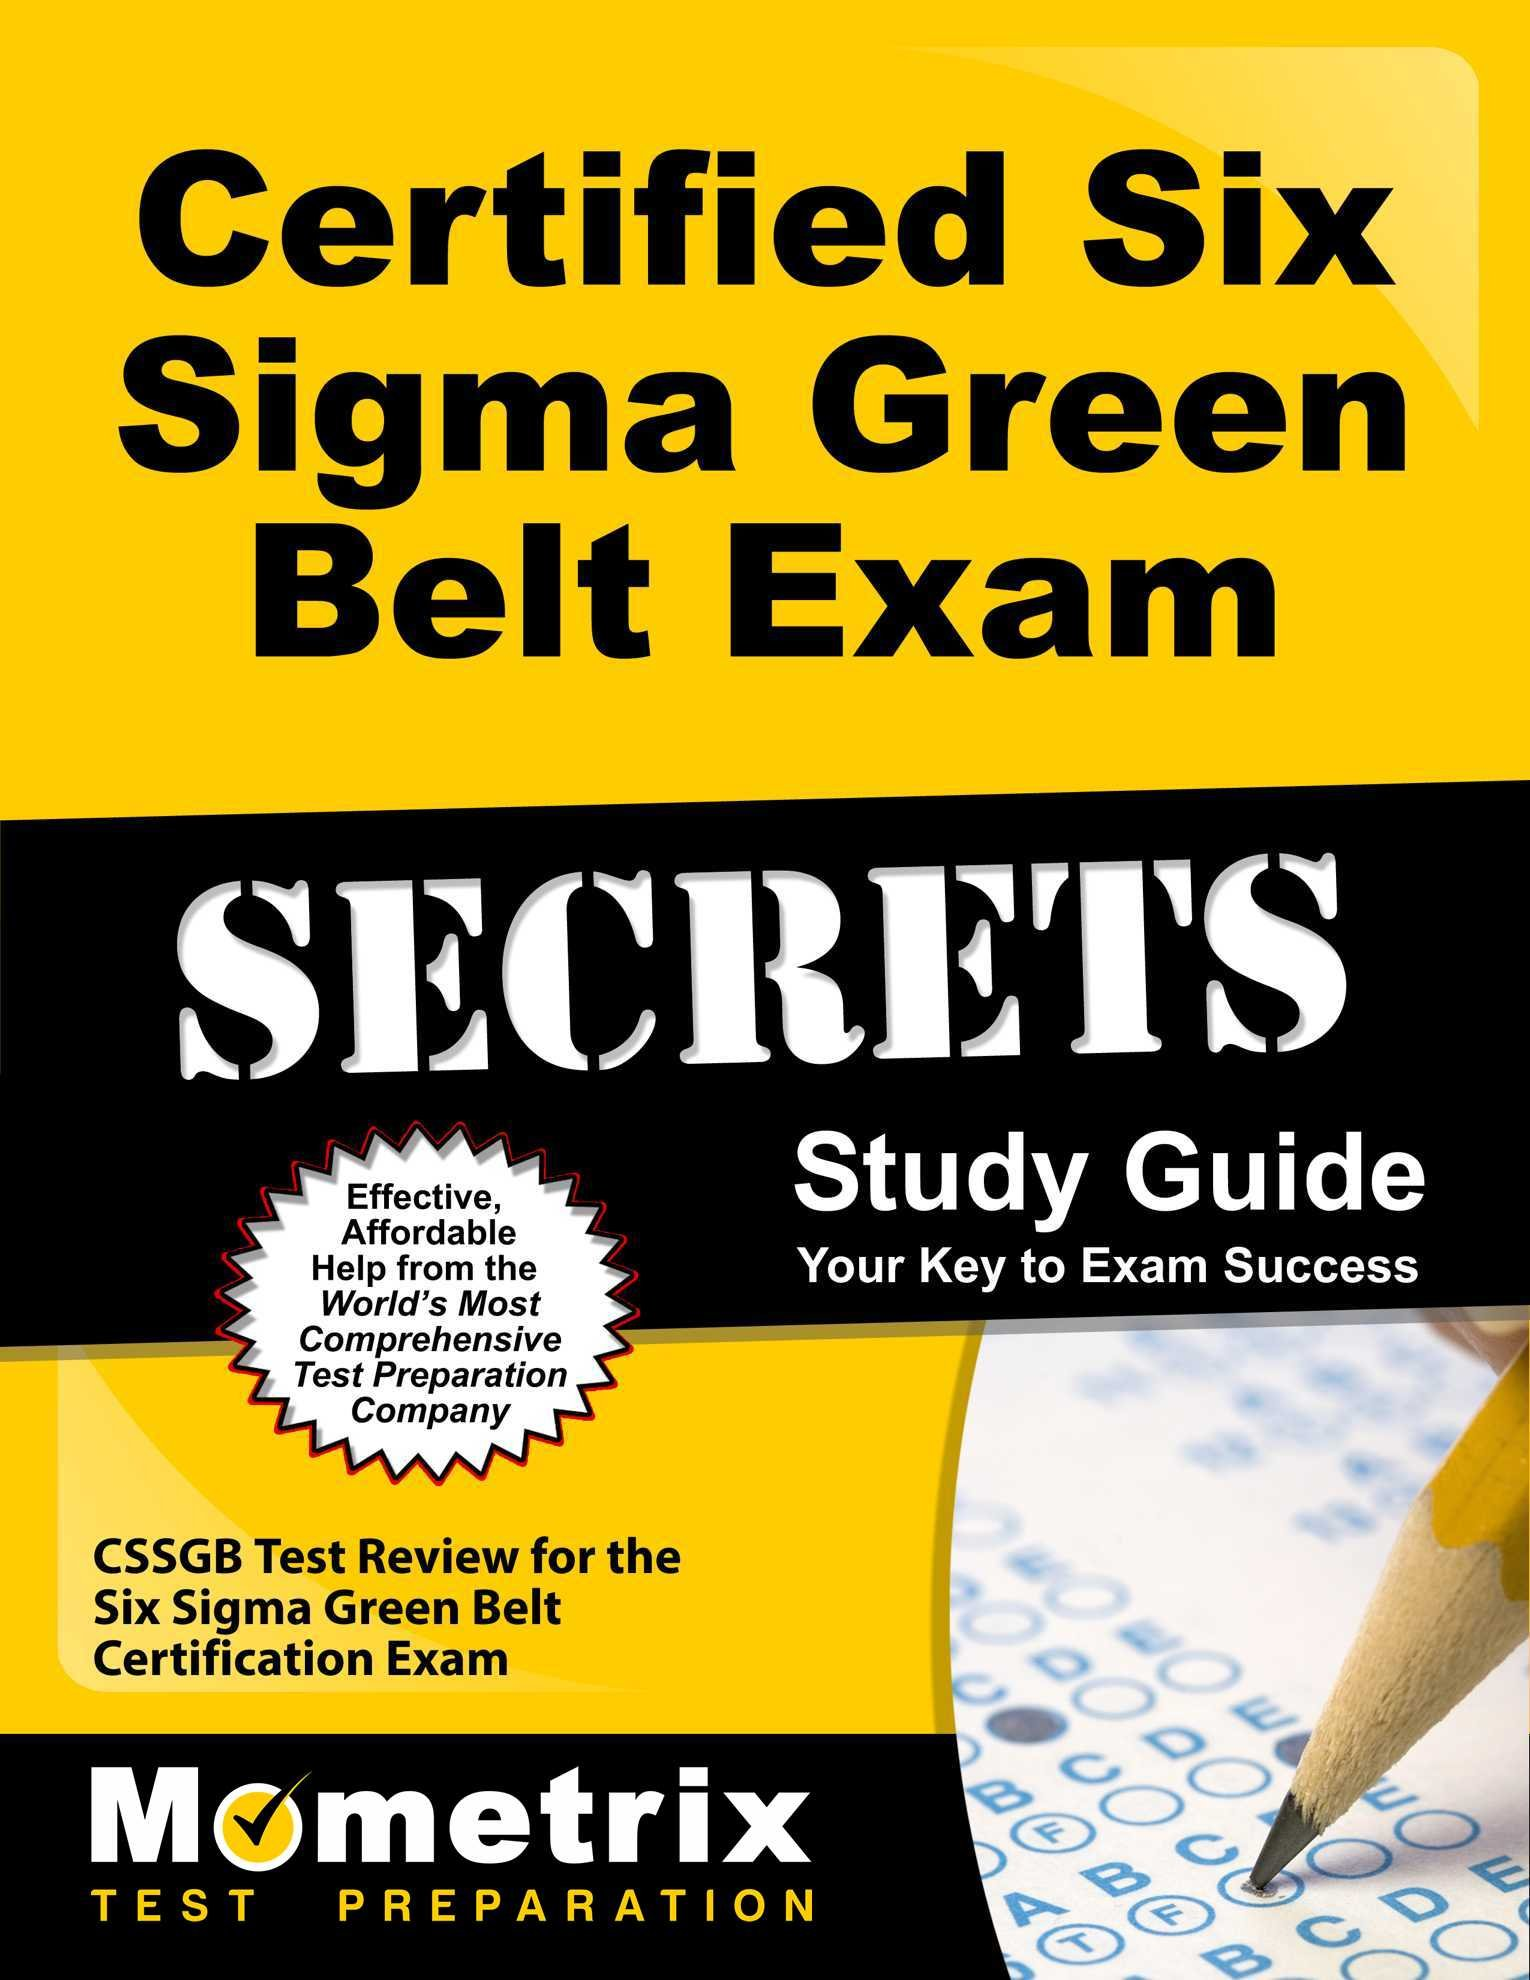 Certified Six Sigma Green Belt Exam Secrets Study Guide Cssgb Test